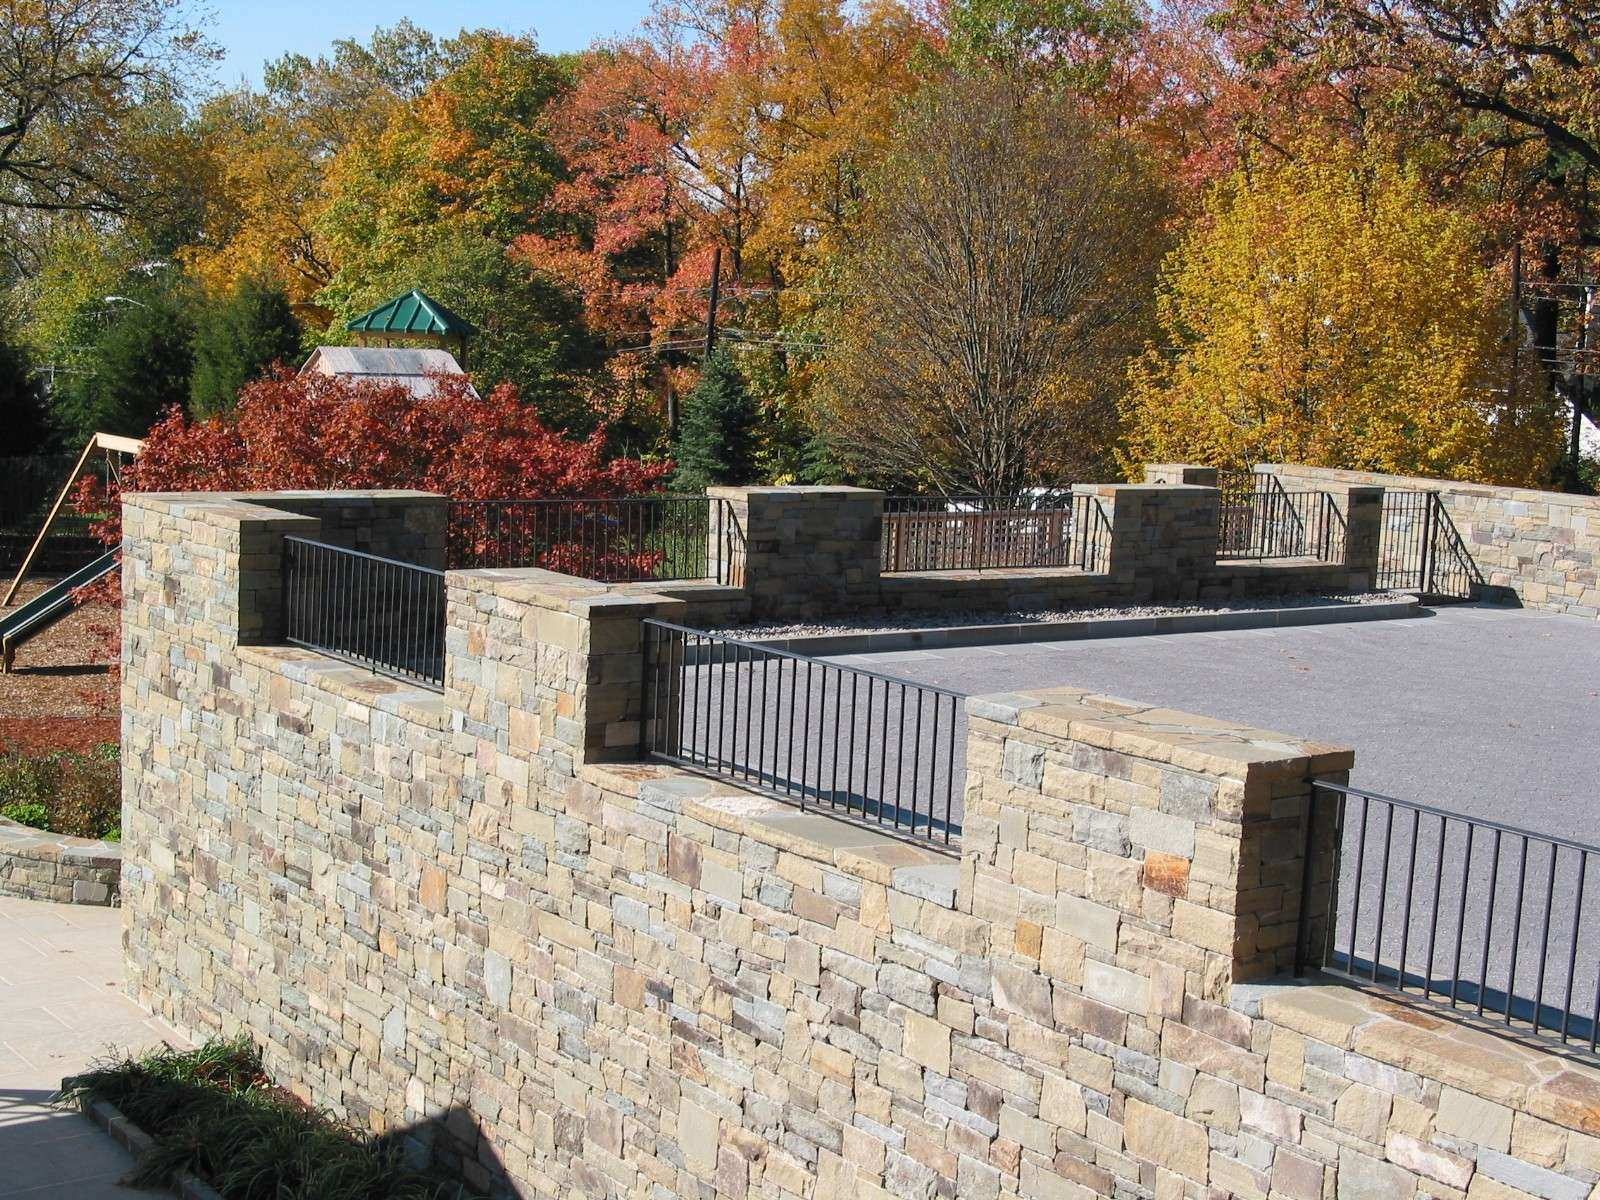 Retaining Wall Pictures Of Retaining Walls Ideas Inspirational Aesthetic Landscape Retaining Walls Design for Landscaping Backyard